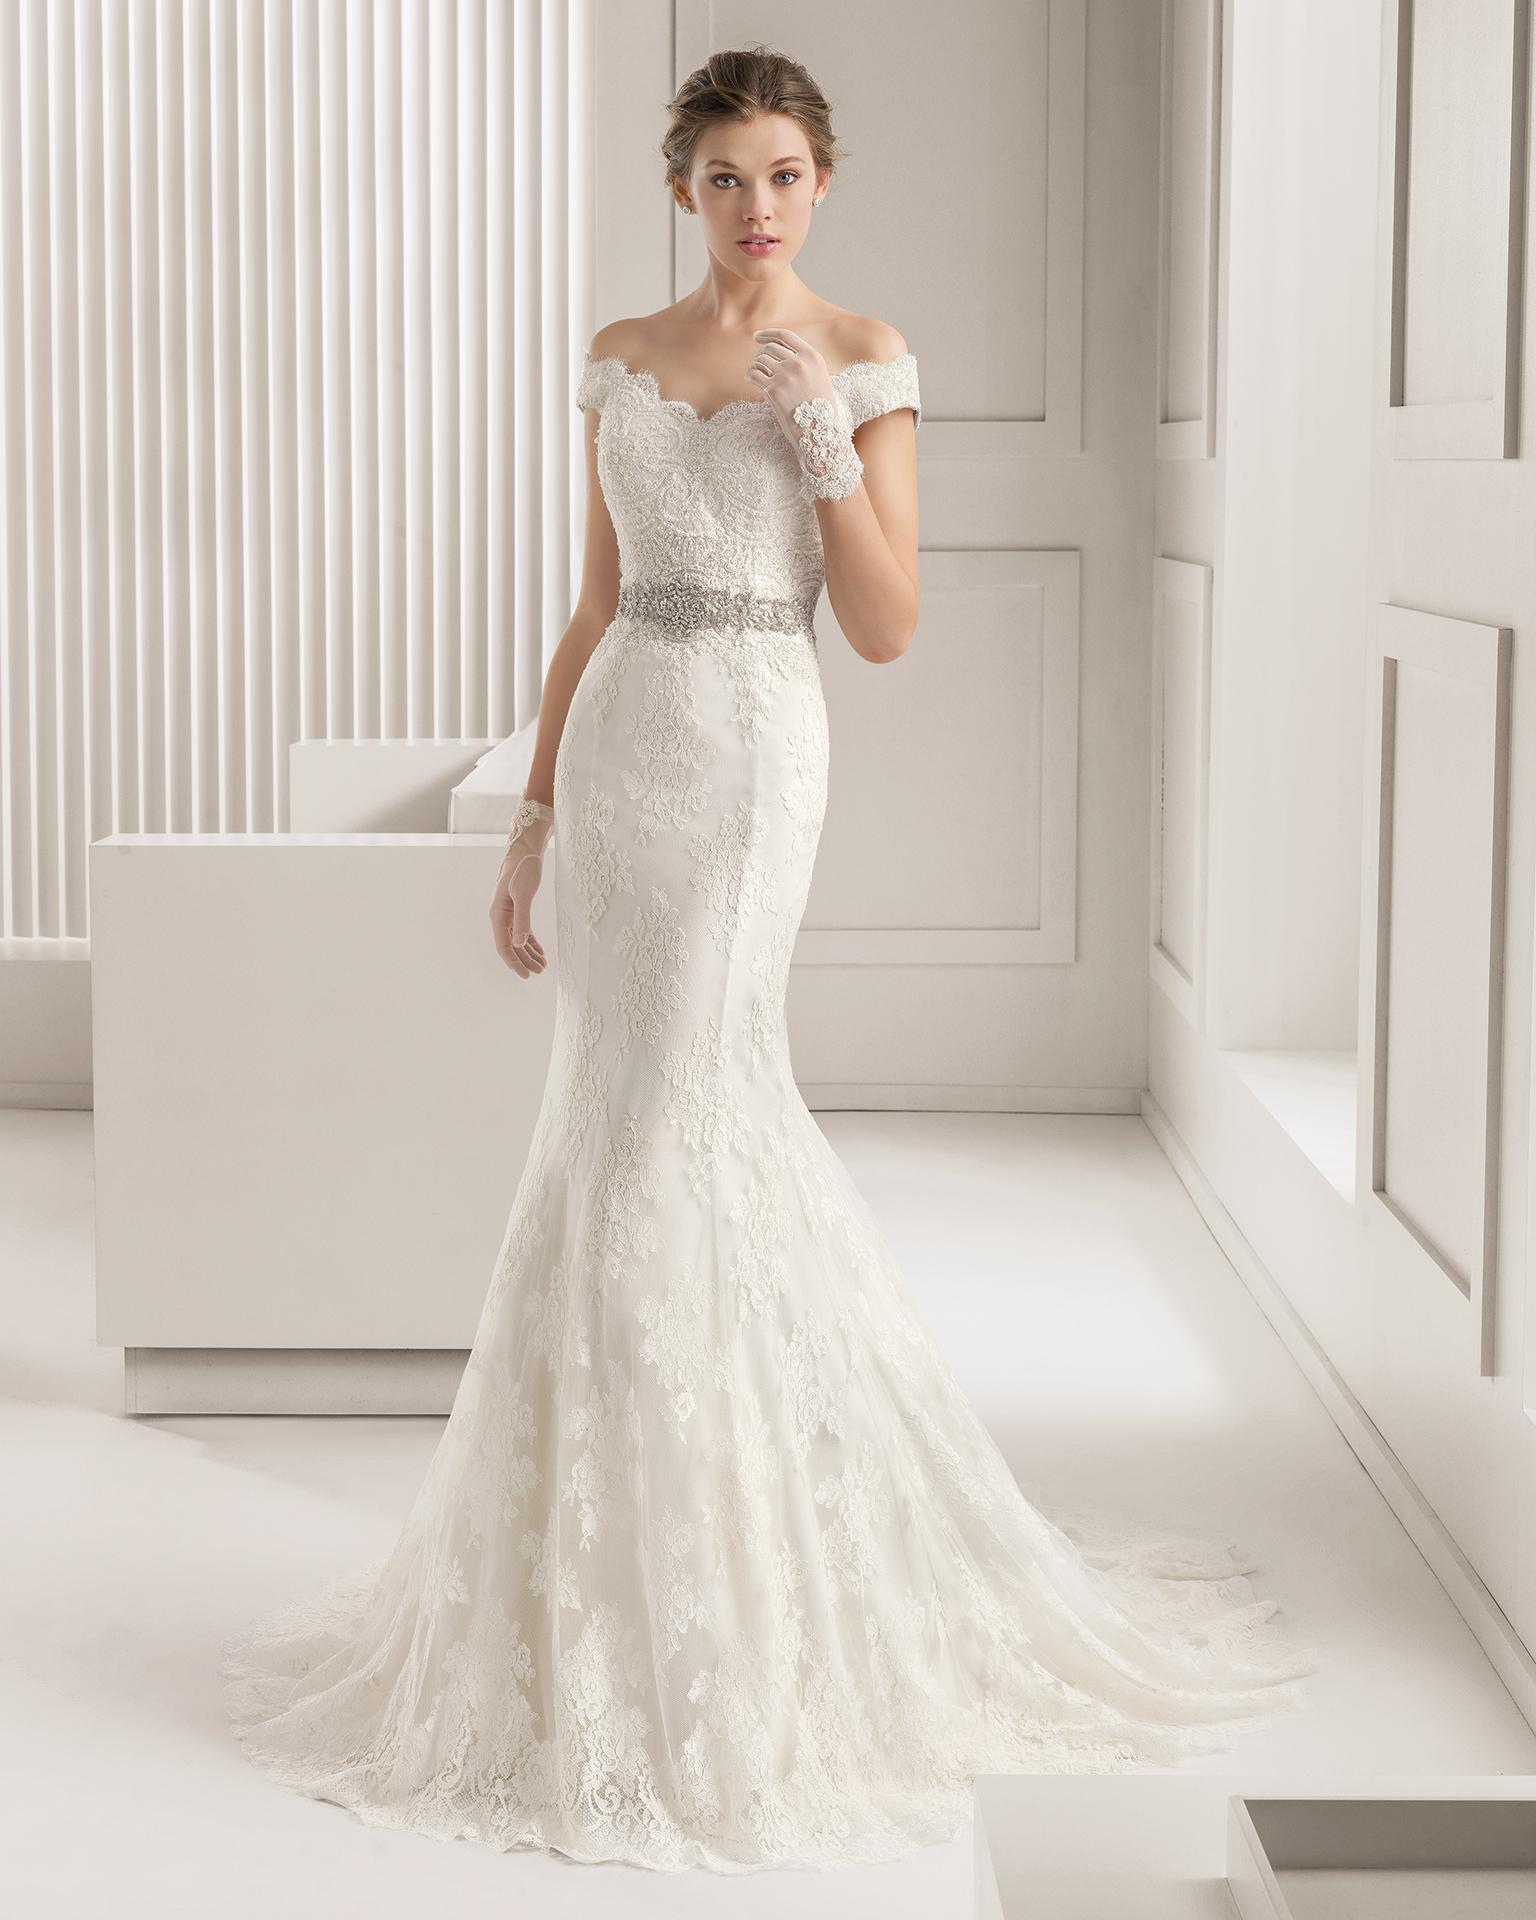 off shoulder wedding dresses mermaid wedding dresses vintage lace mermaid wedding dresses off shoulder button back sequins applique bodice bridal gown court train soft tulle crystal belt lace wedding